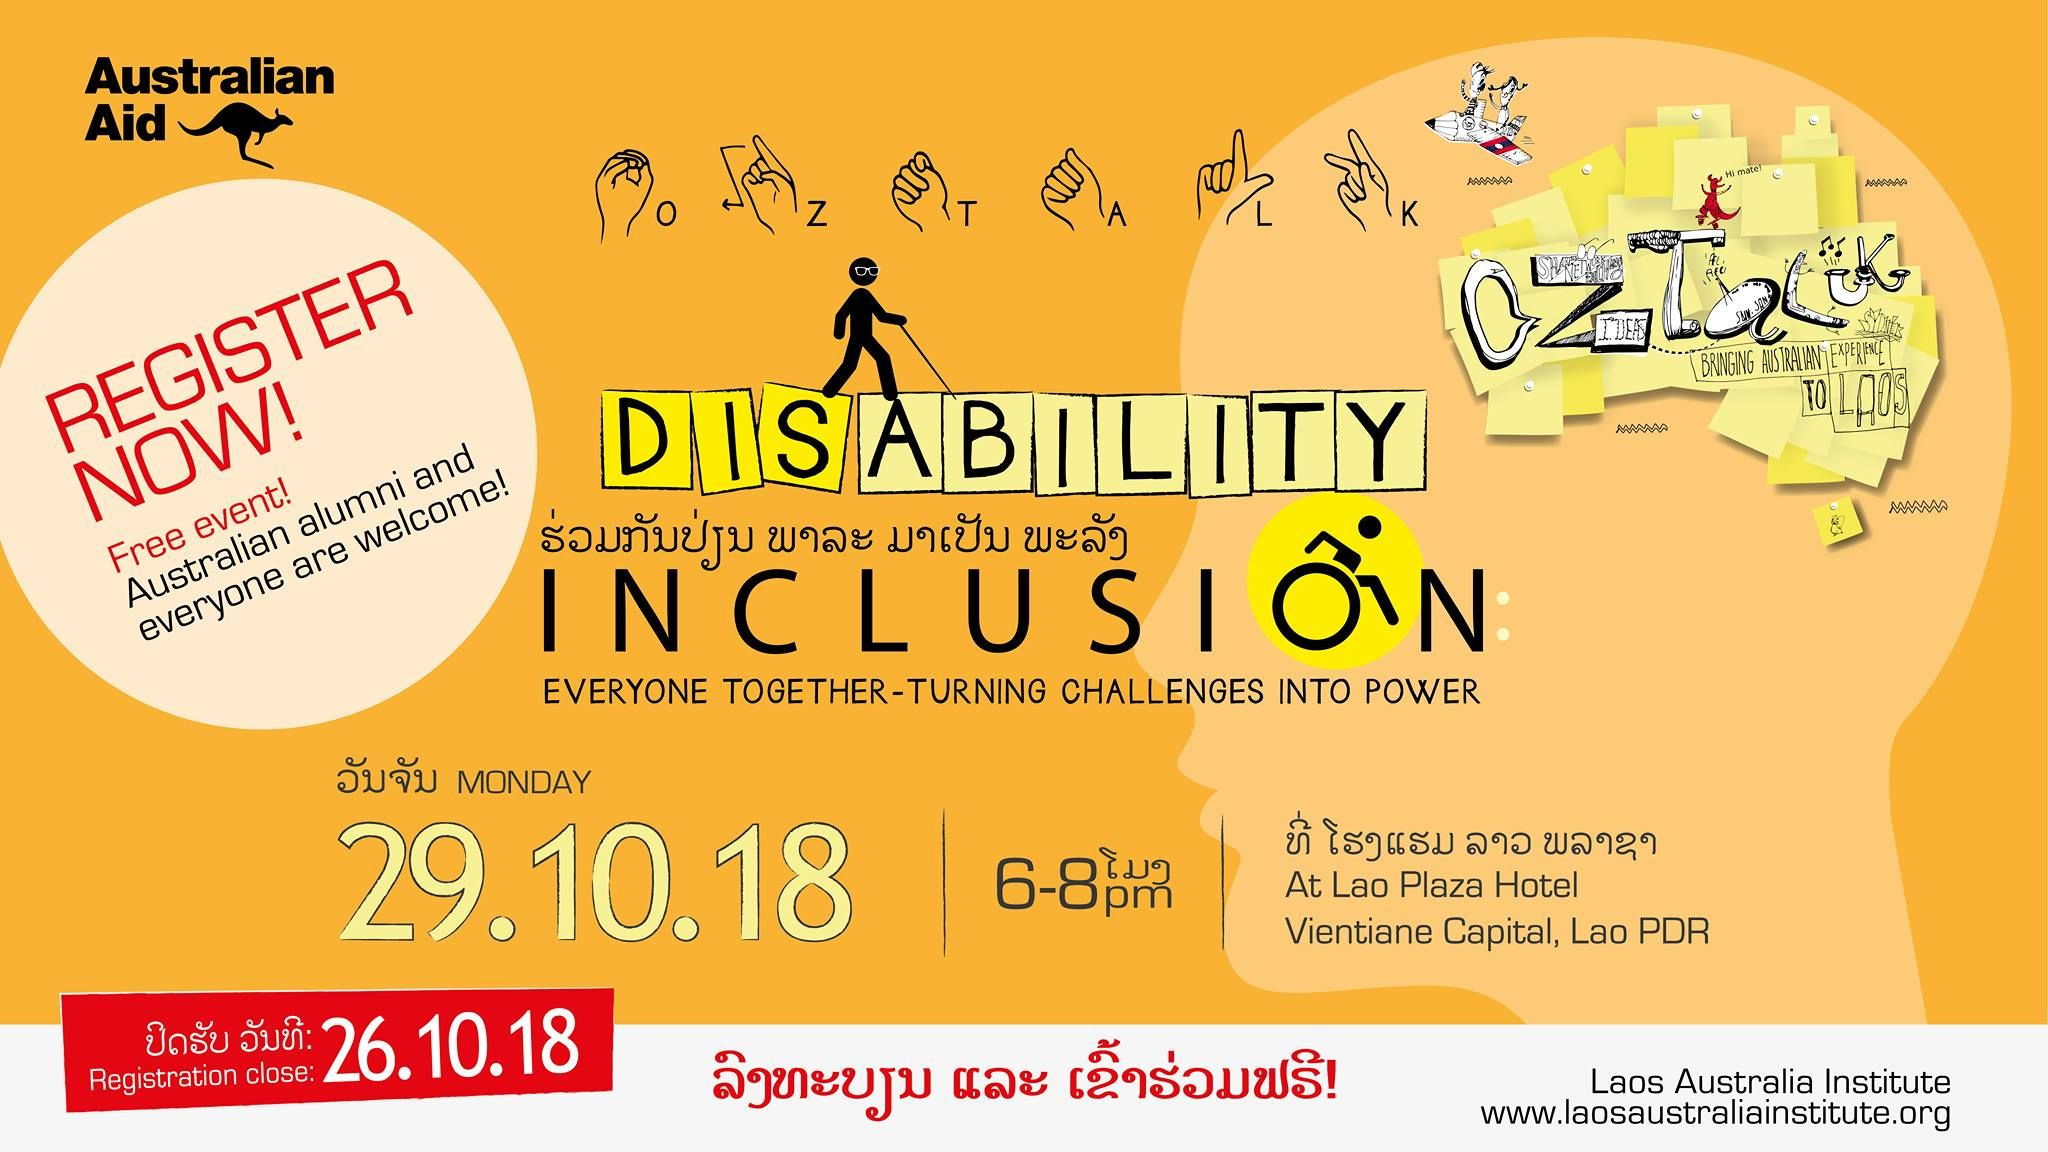 Let's Talk Disability Inclusion!! #MeetThinkShare